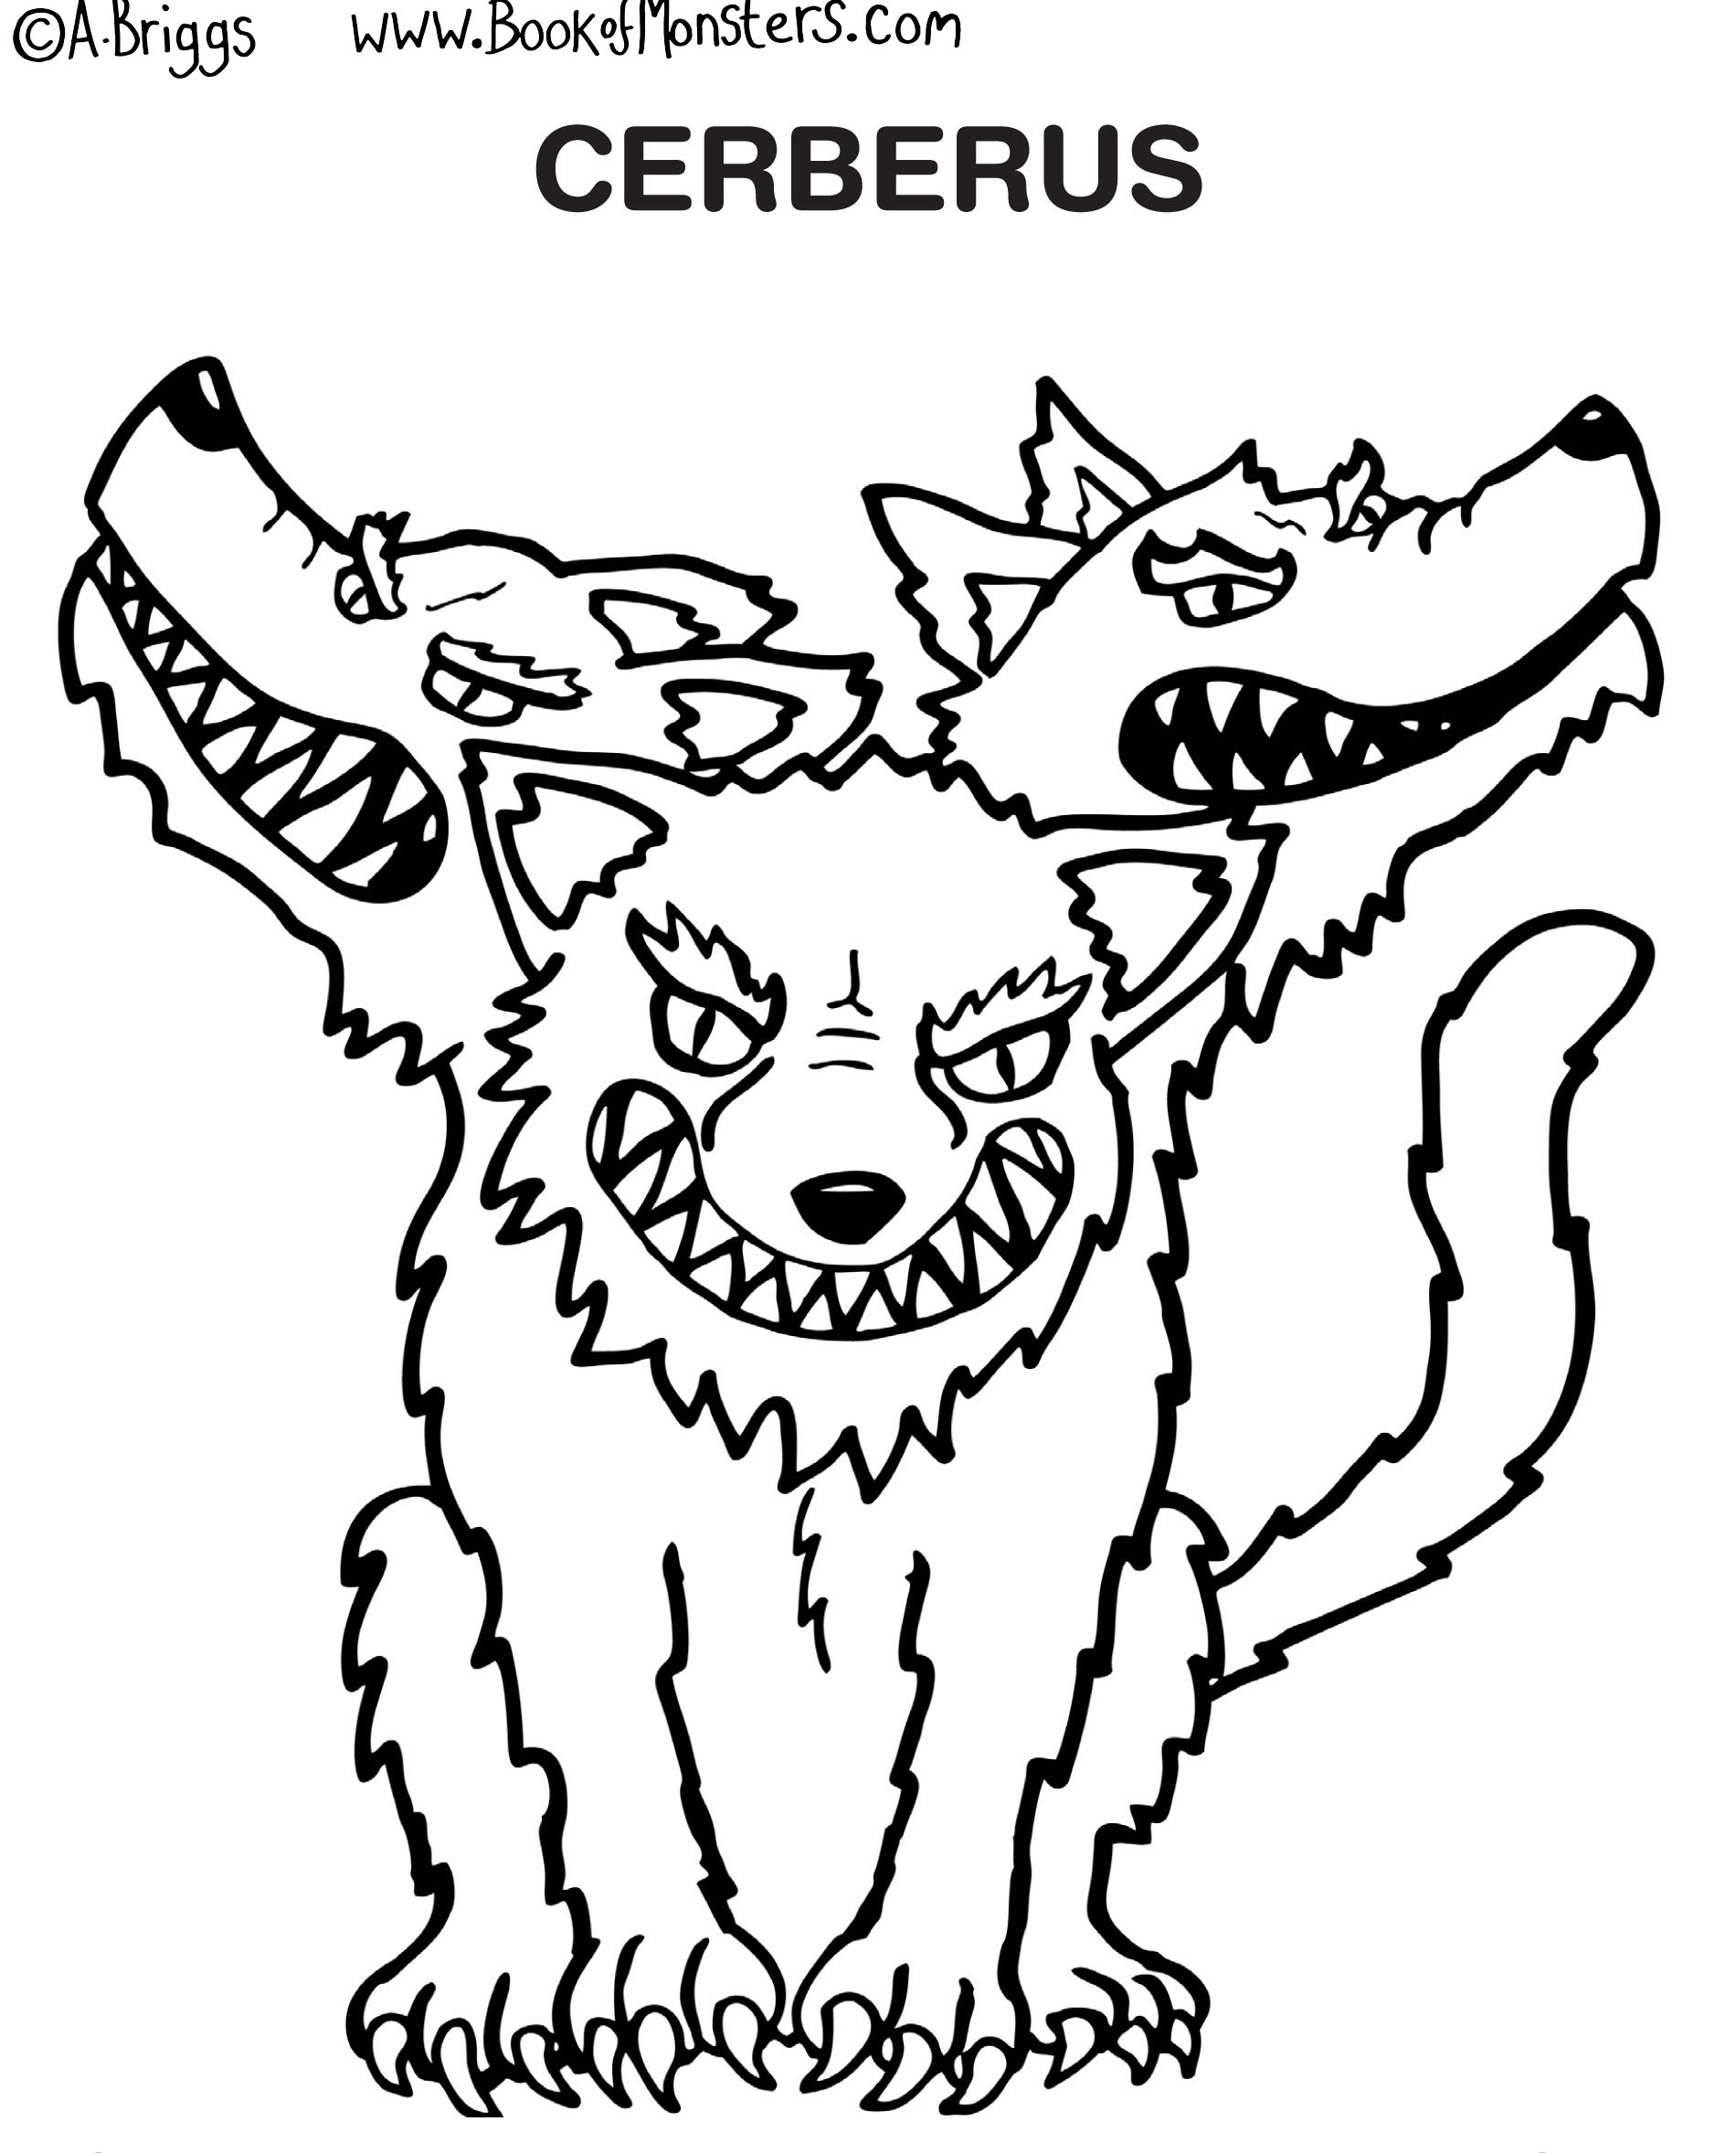 The Best Free Cerberus Coloring Page Images Download From 23 Free